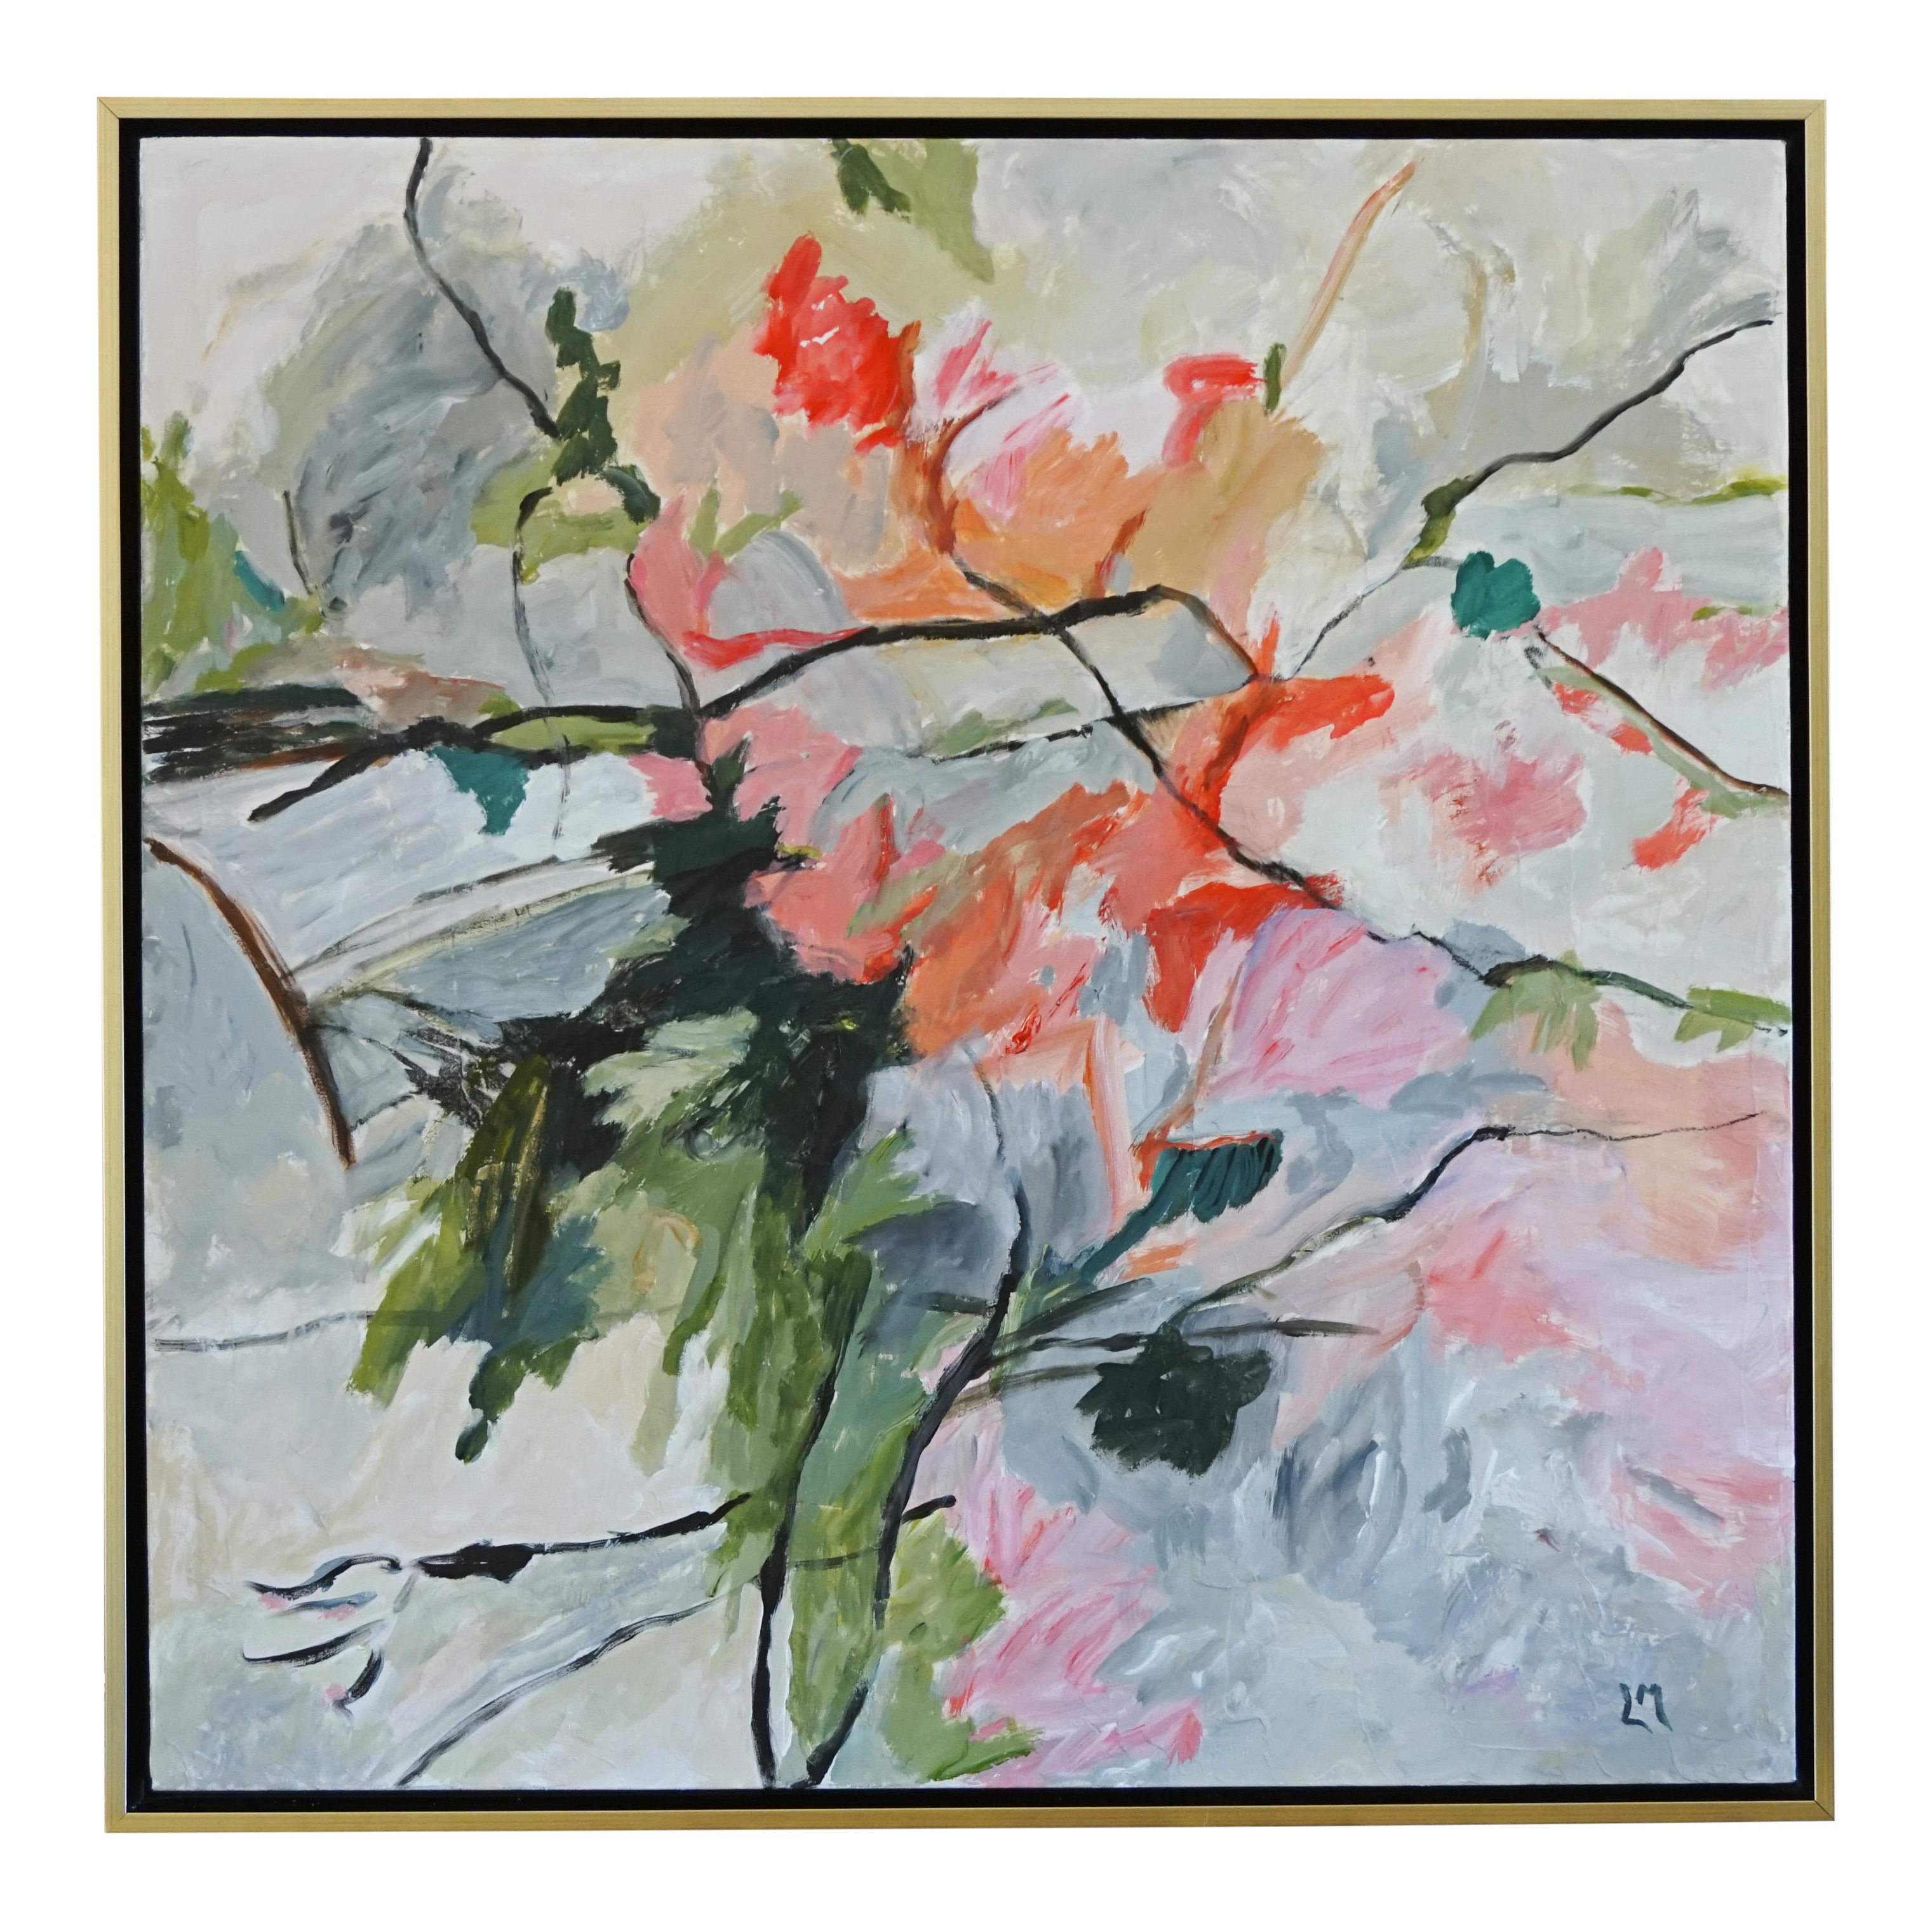 Life Cycle Floral Painting On Chairish Com In 2020 Floral Painting Painting Gestural Painting